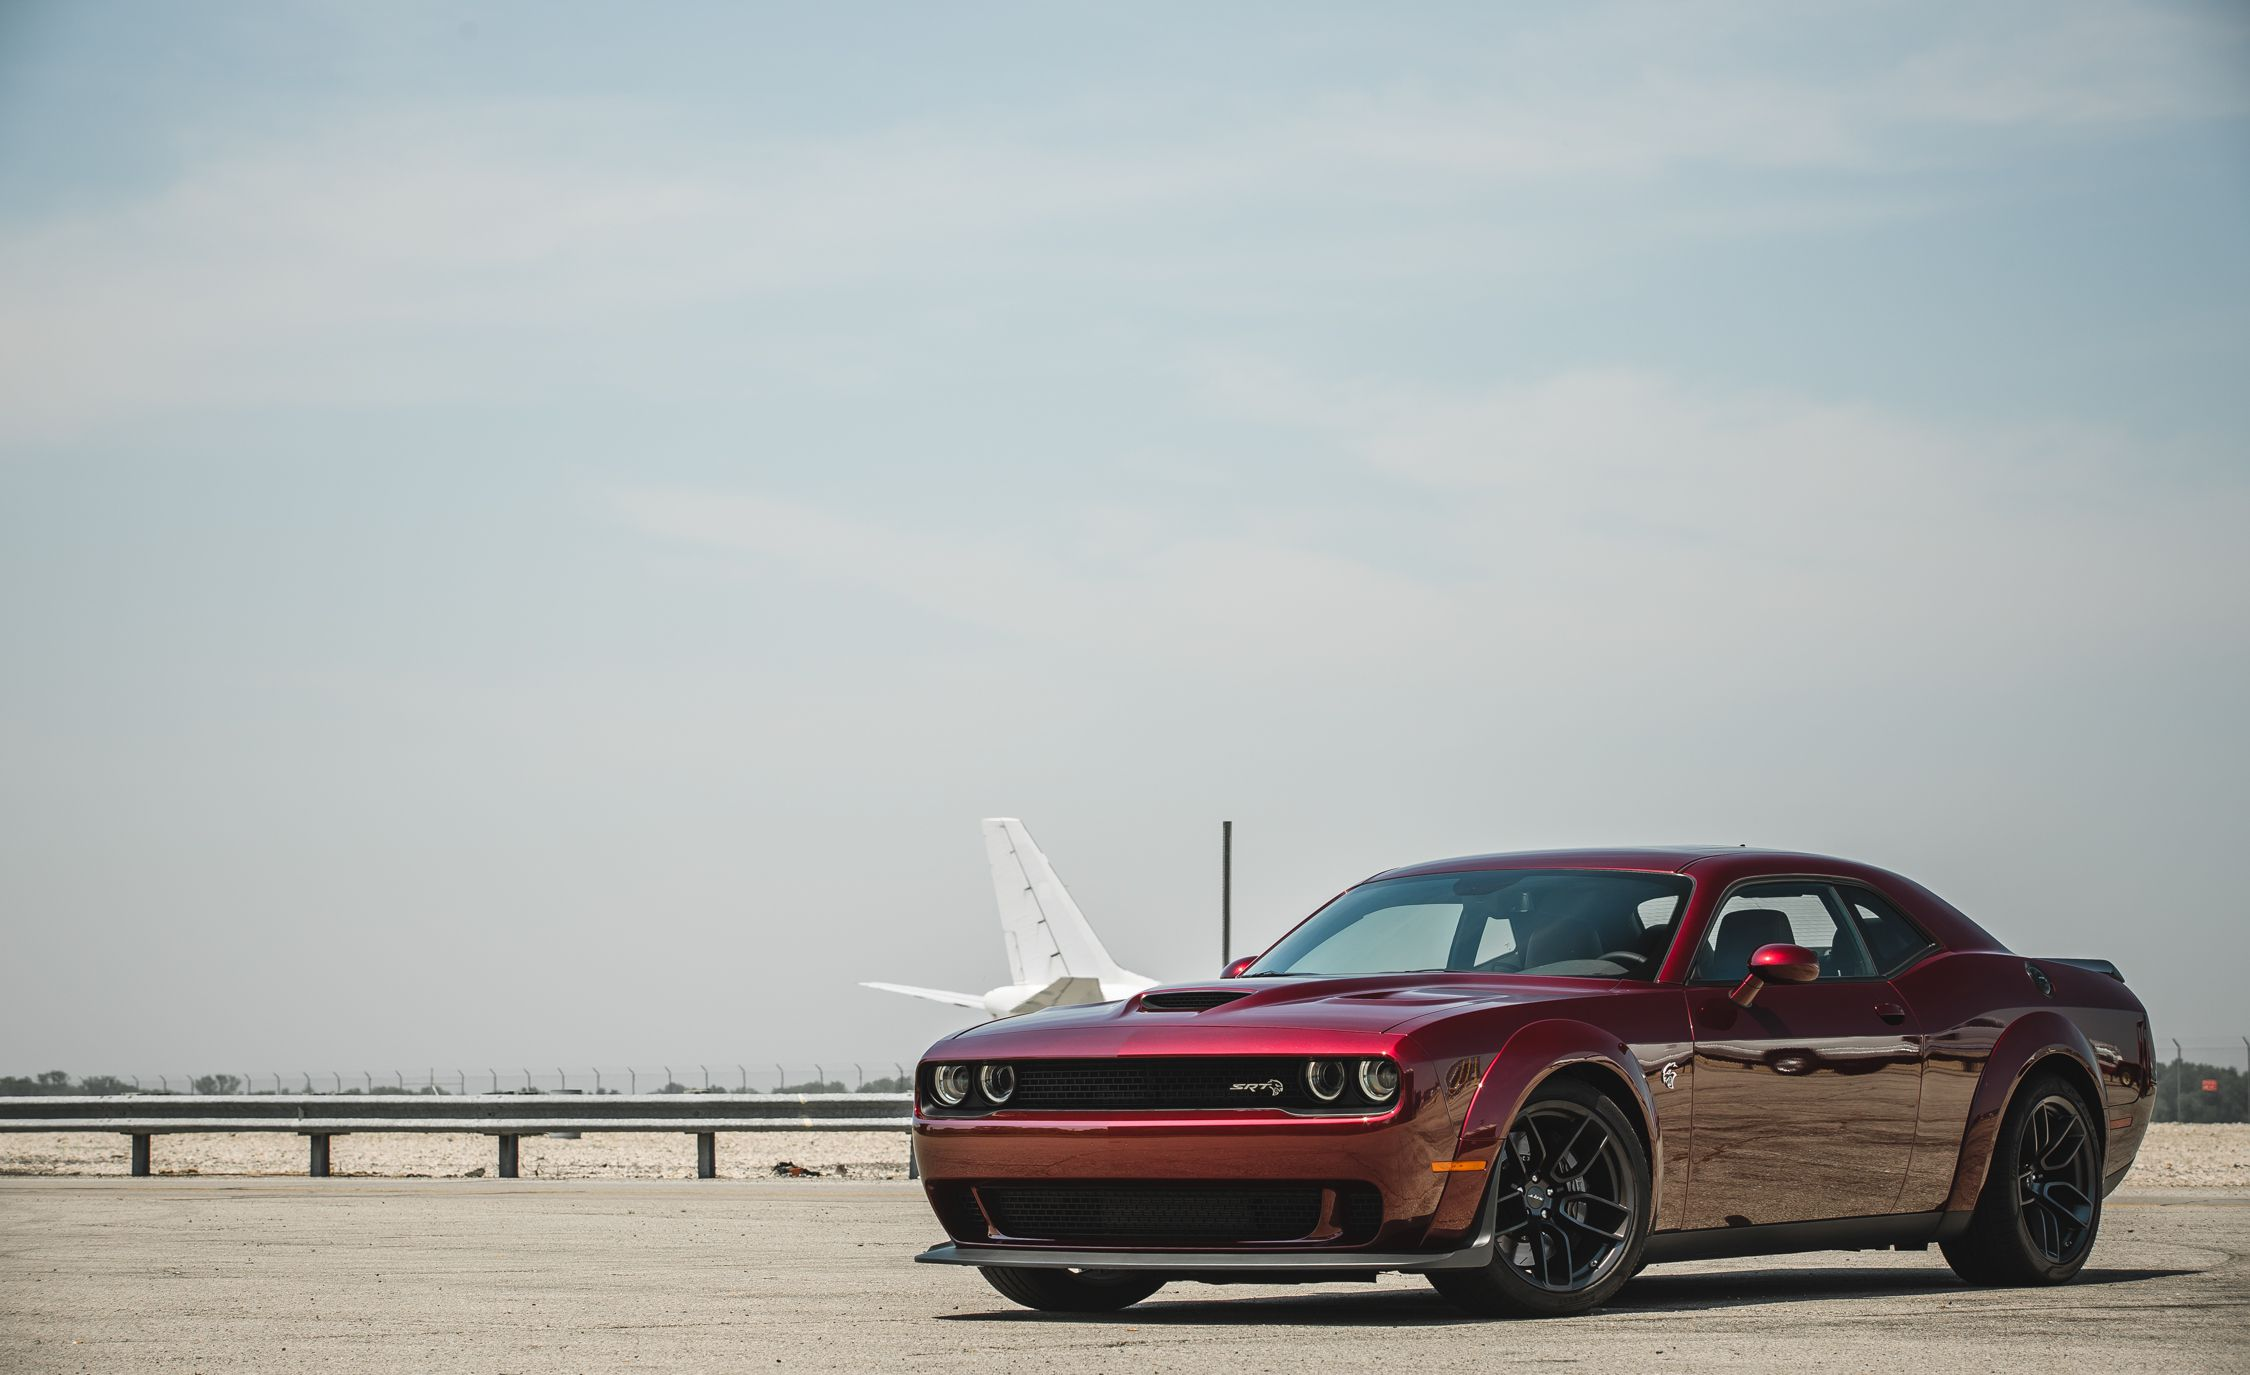 2018 Dodge Challenger SRT Hellcat Widebody (Color: Octane Red) Front Three-Quarter Wallpapers (13)